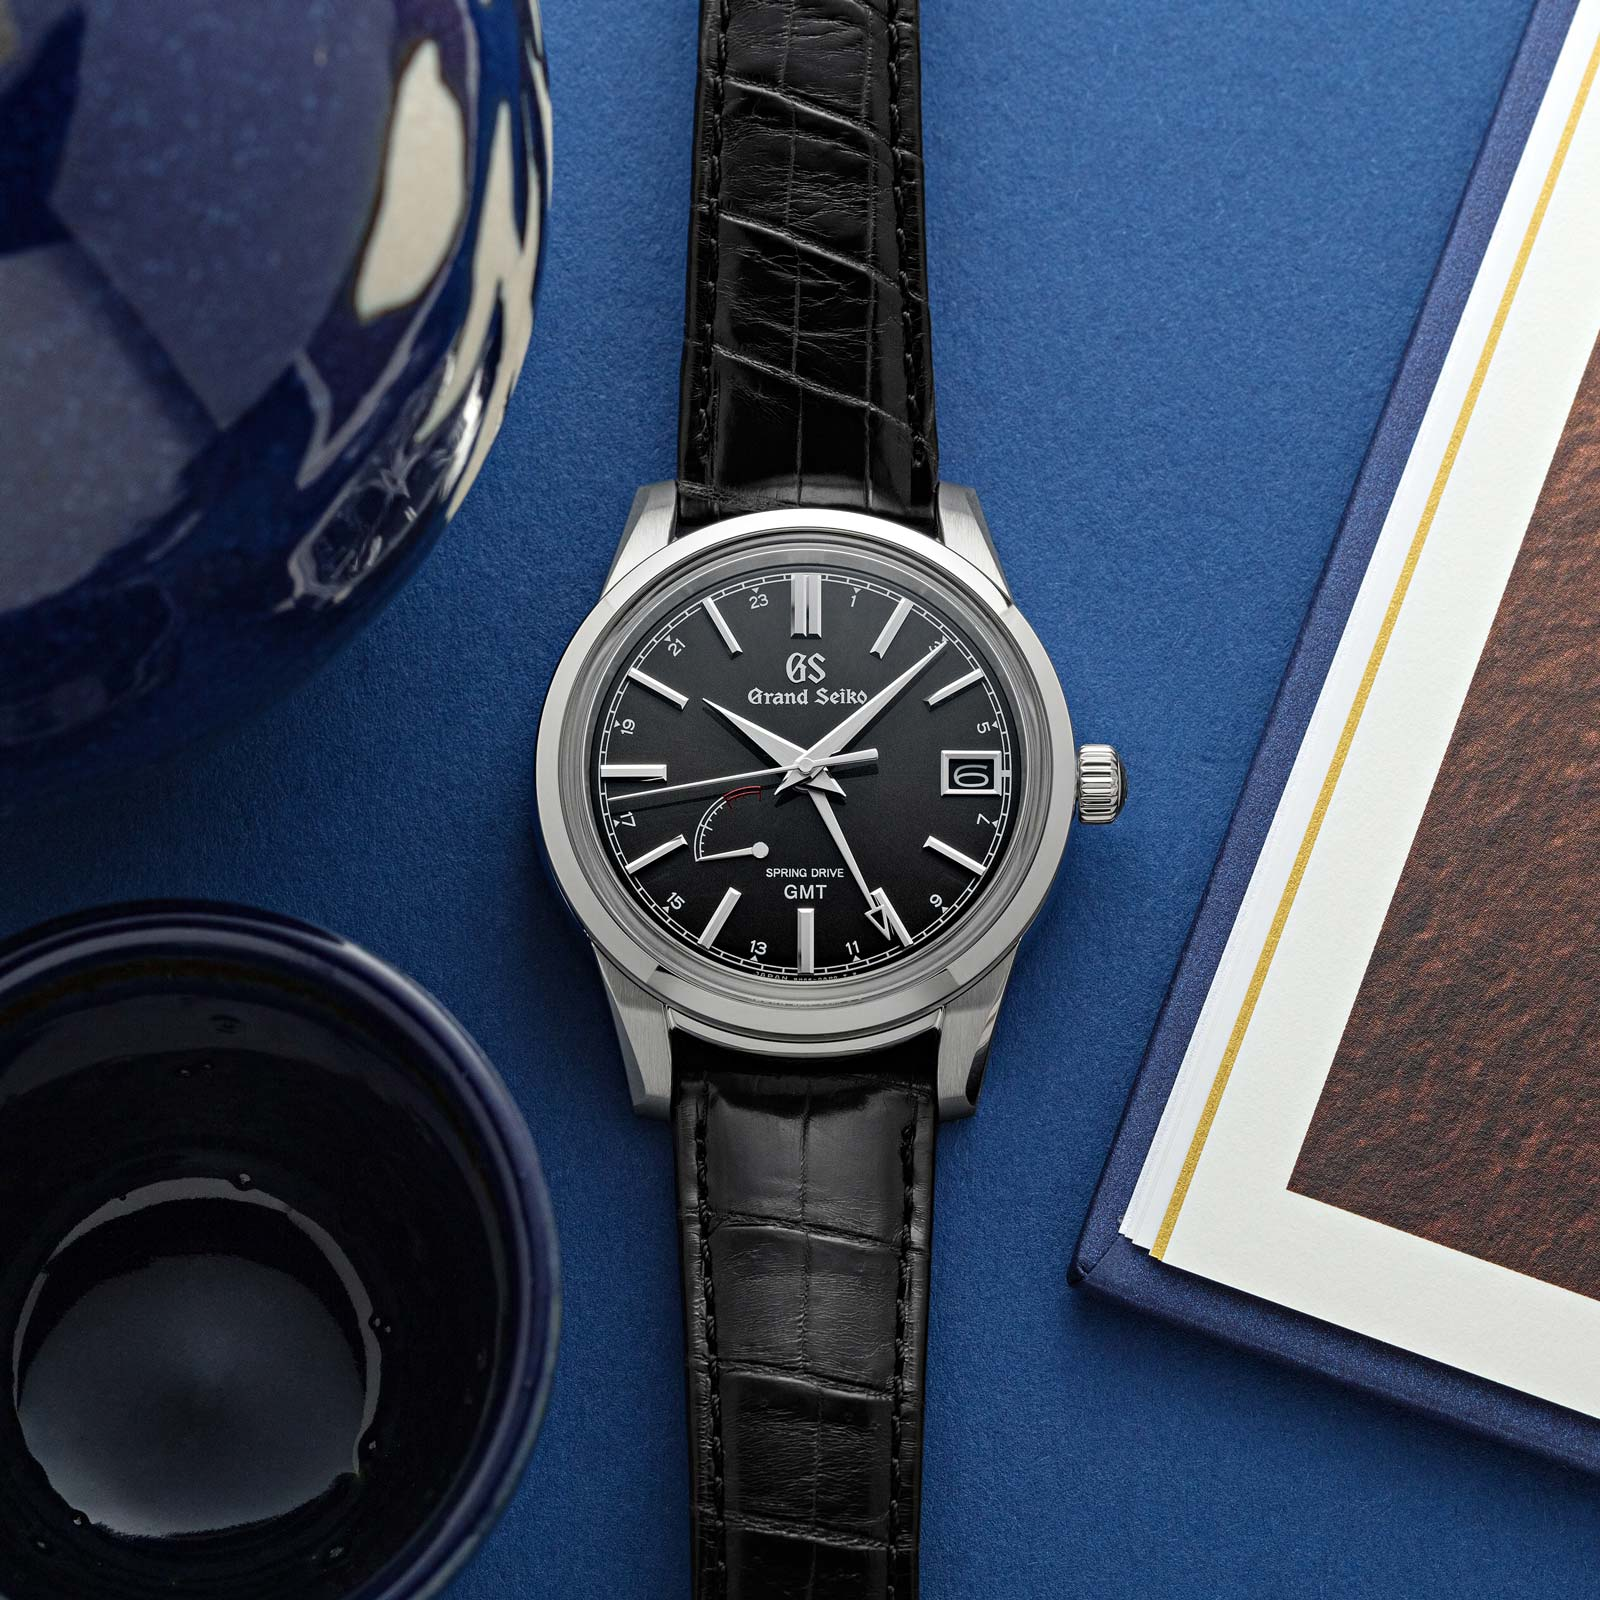 Grand Seiko SBGE227 GMT 40mm watch with a grey dial and crocodile strap.